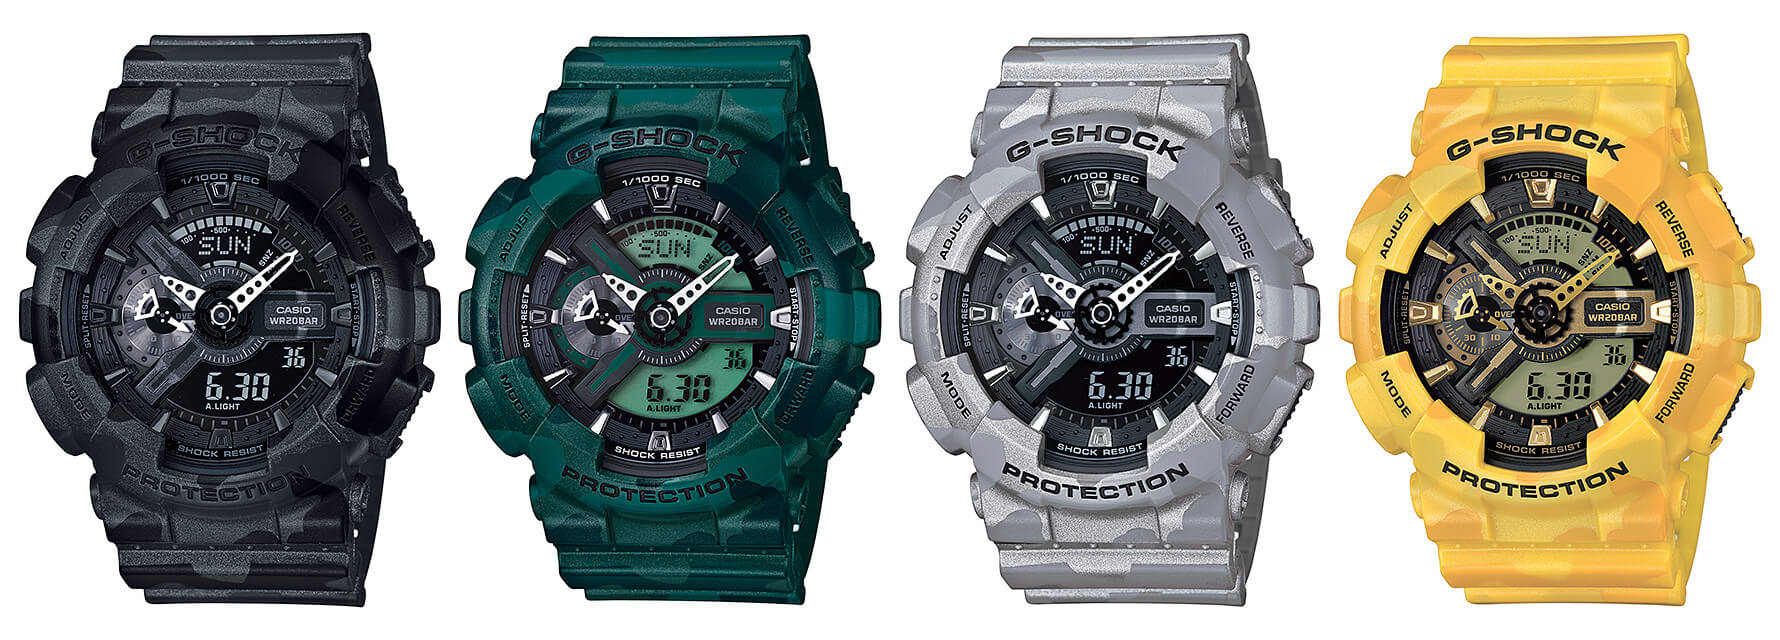 The Top Camouflage G Shock Watches Central Watch Fan Blog Casio Gd 100 1bdr Ga 110cm Series